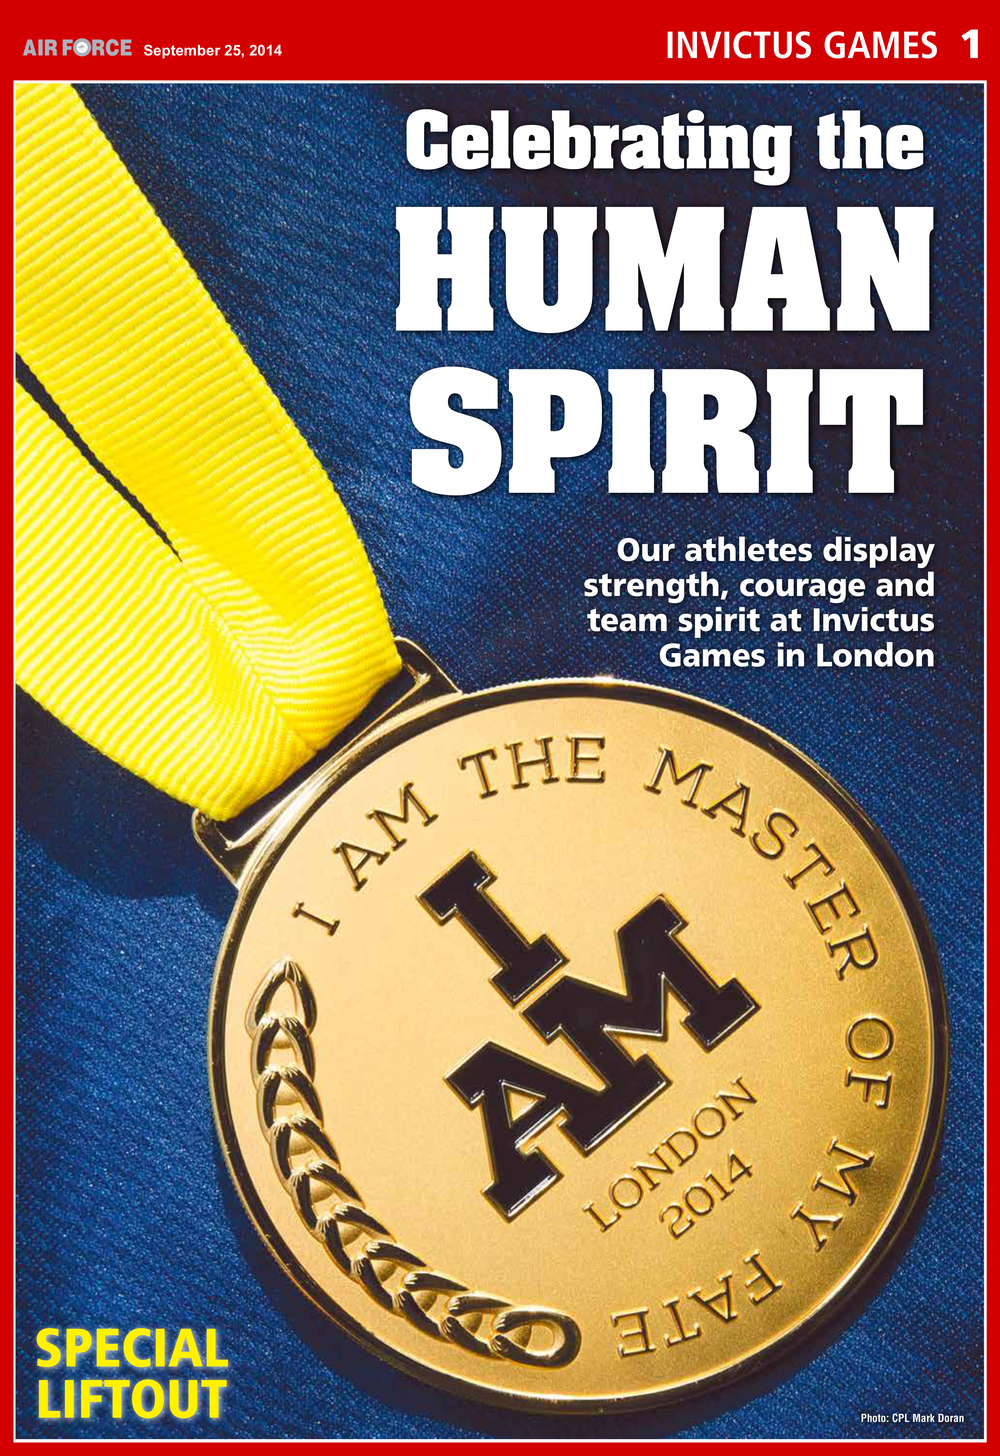 air-force-news-invictus-games-25-september-2014.png